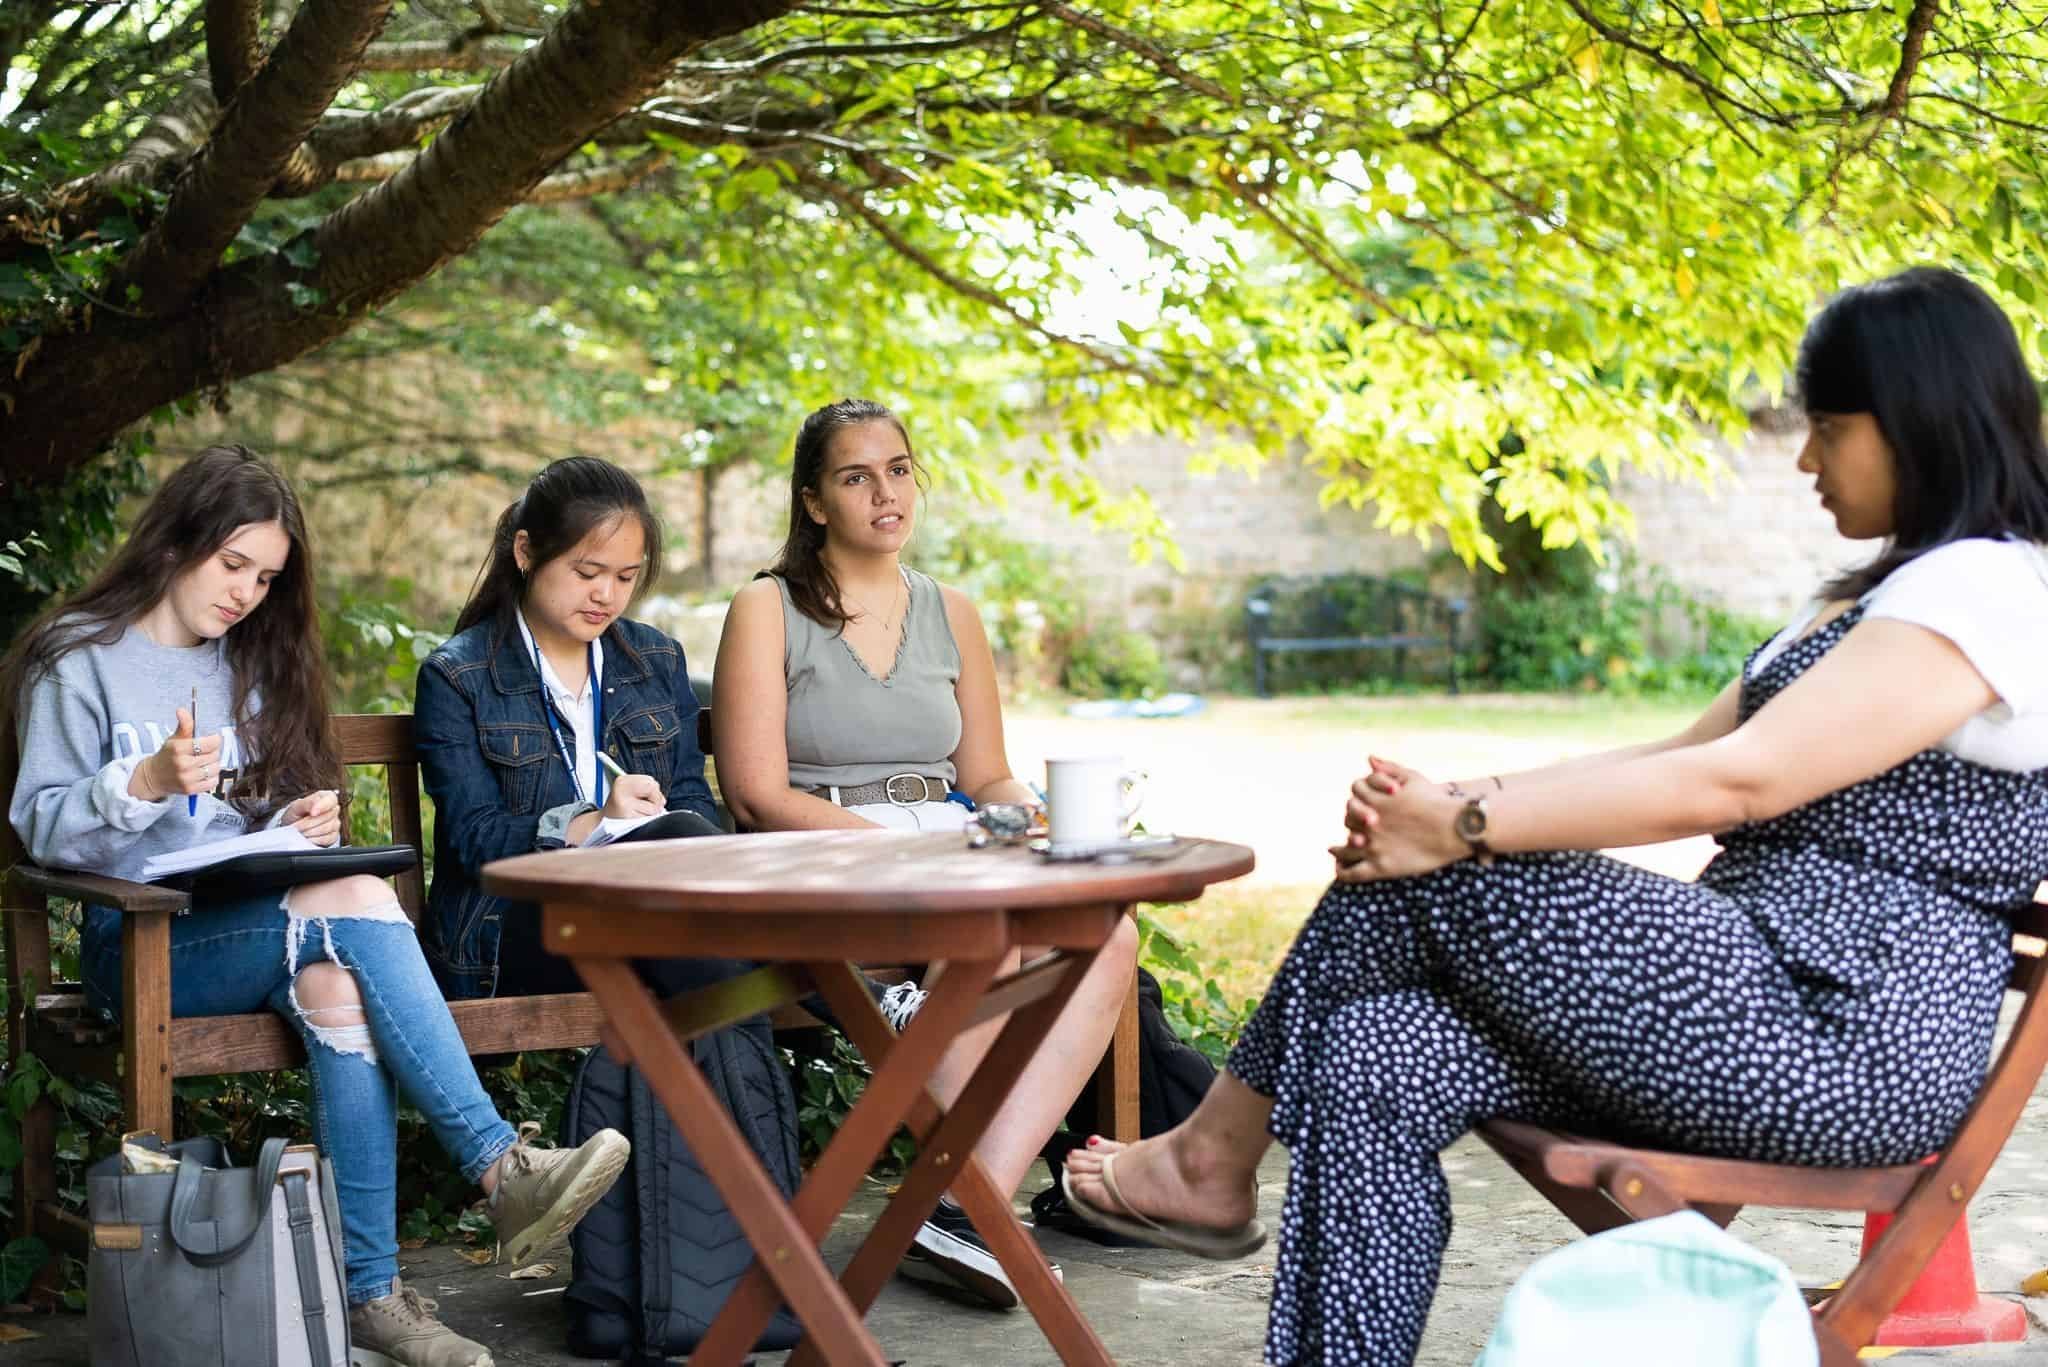 Students and tutors in a garden at oxford, talking about tips for the interview